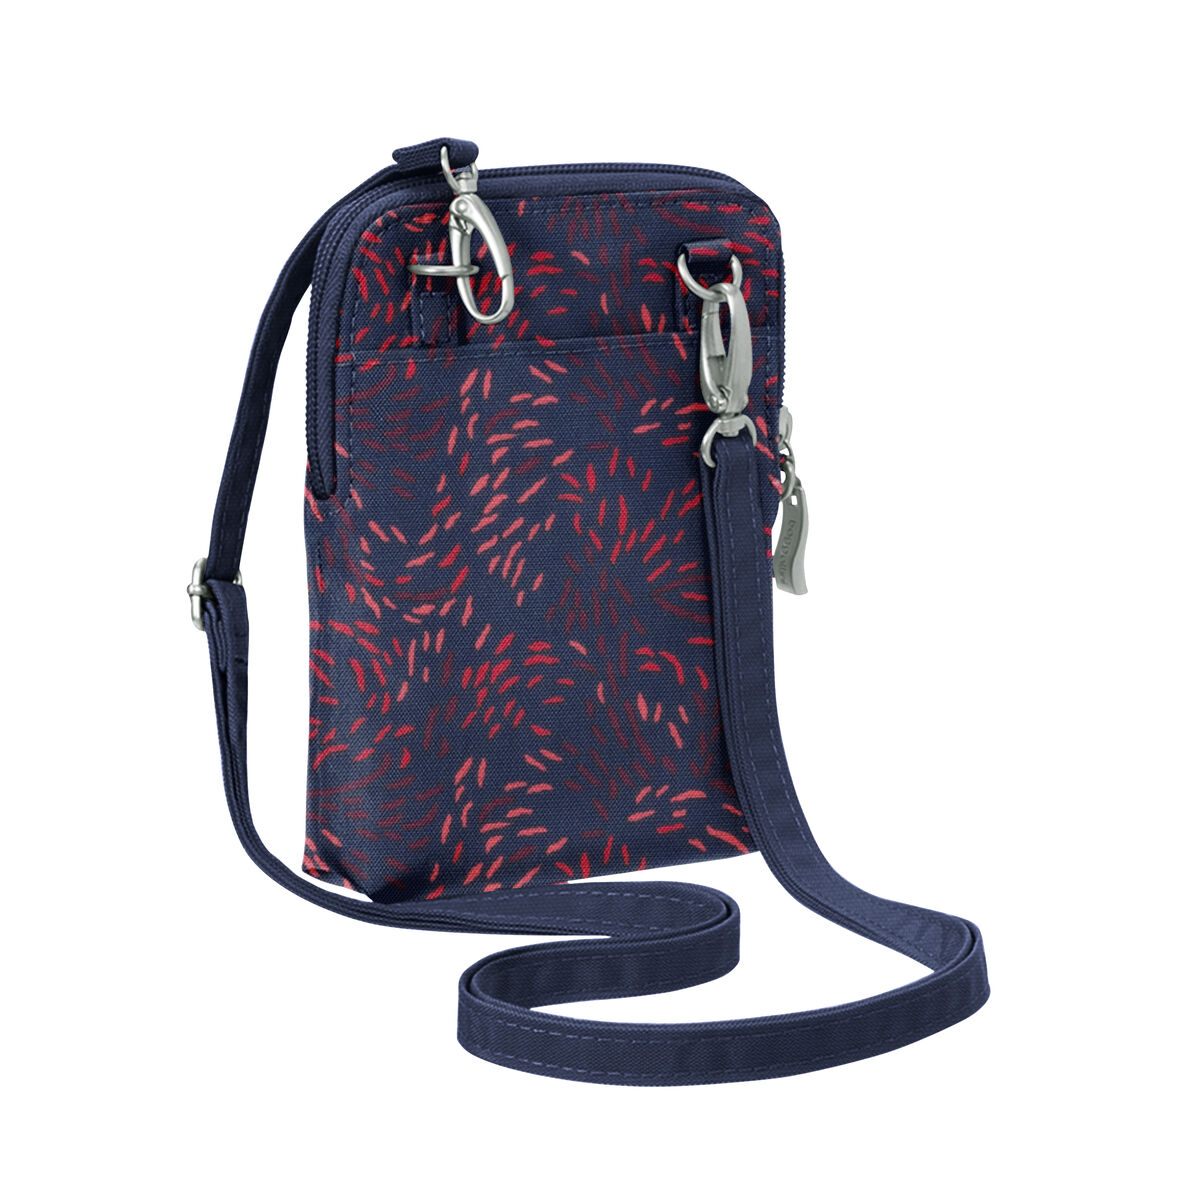 rfid convertible bryant pouch